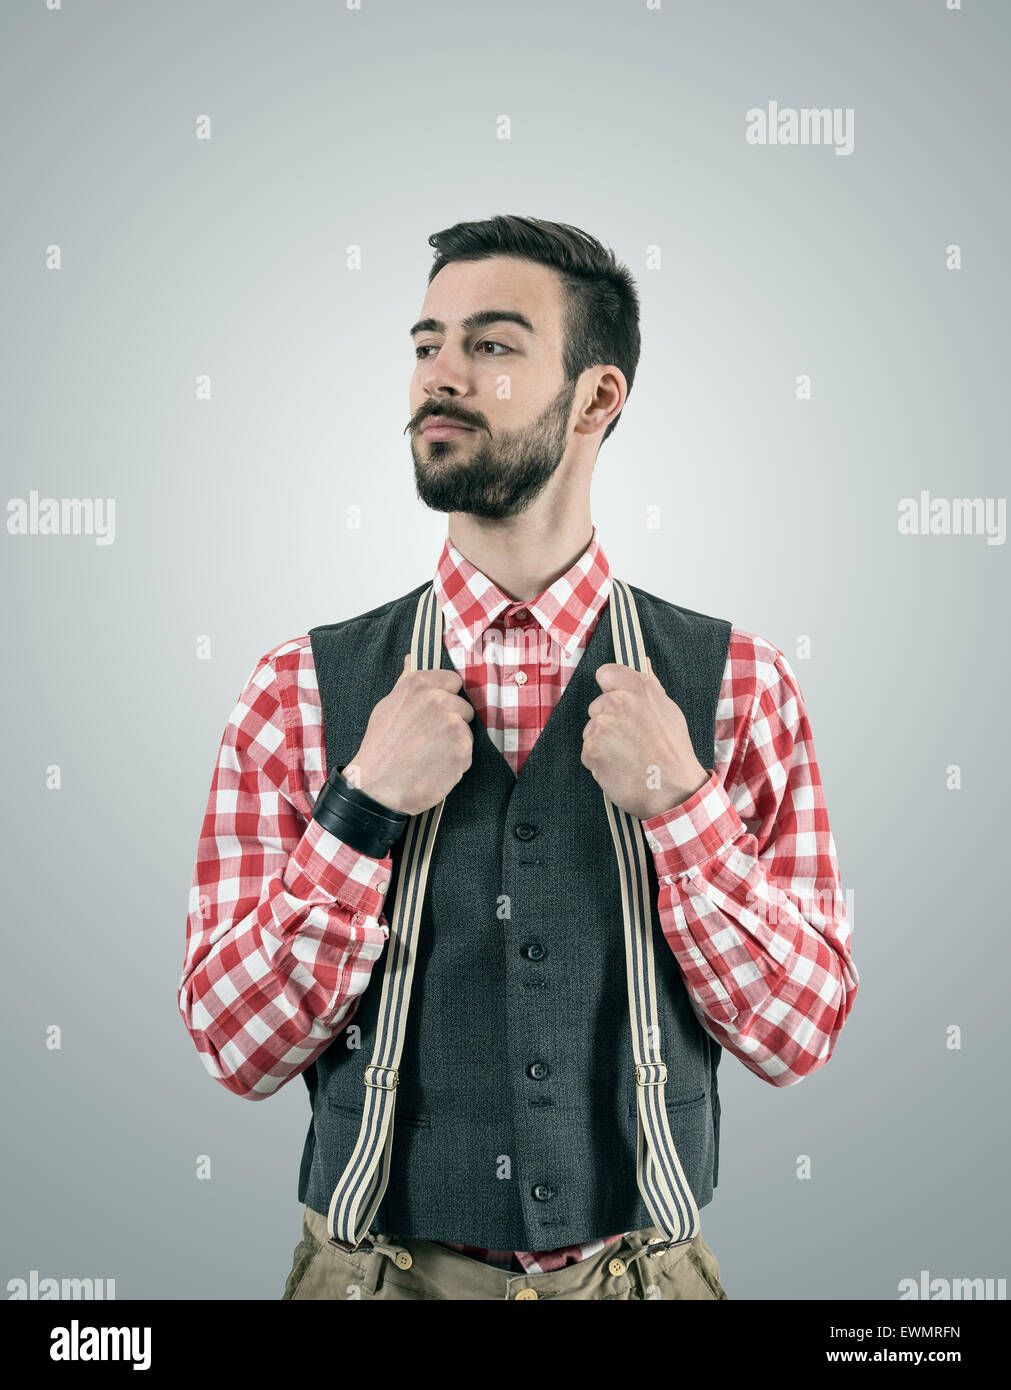 Desaturated portrait of standing young hipster model looking away with raised eyebrow while holding his pants suspenders. - Stock Image